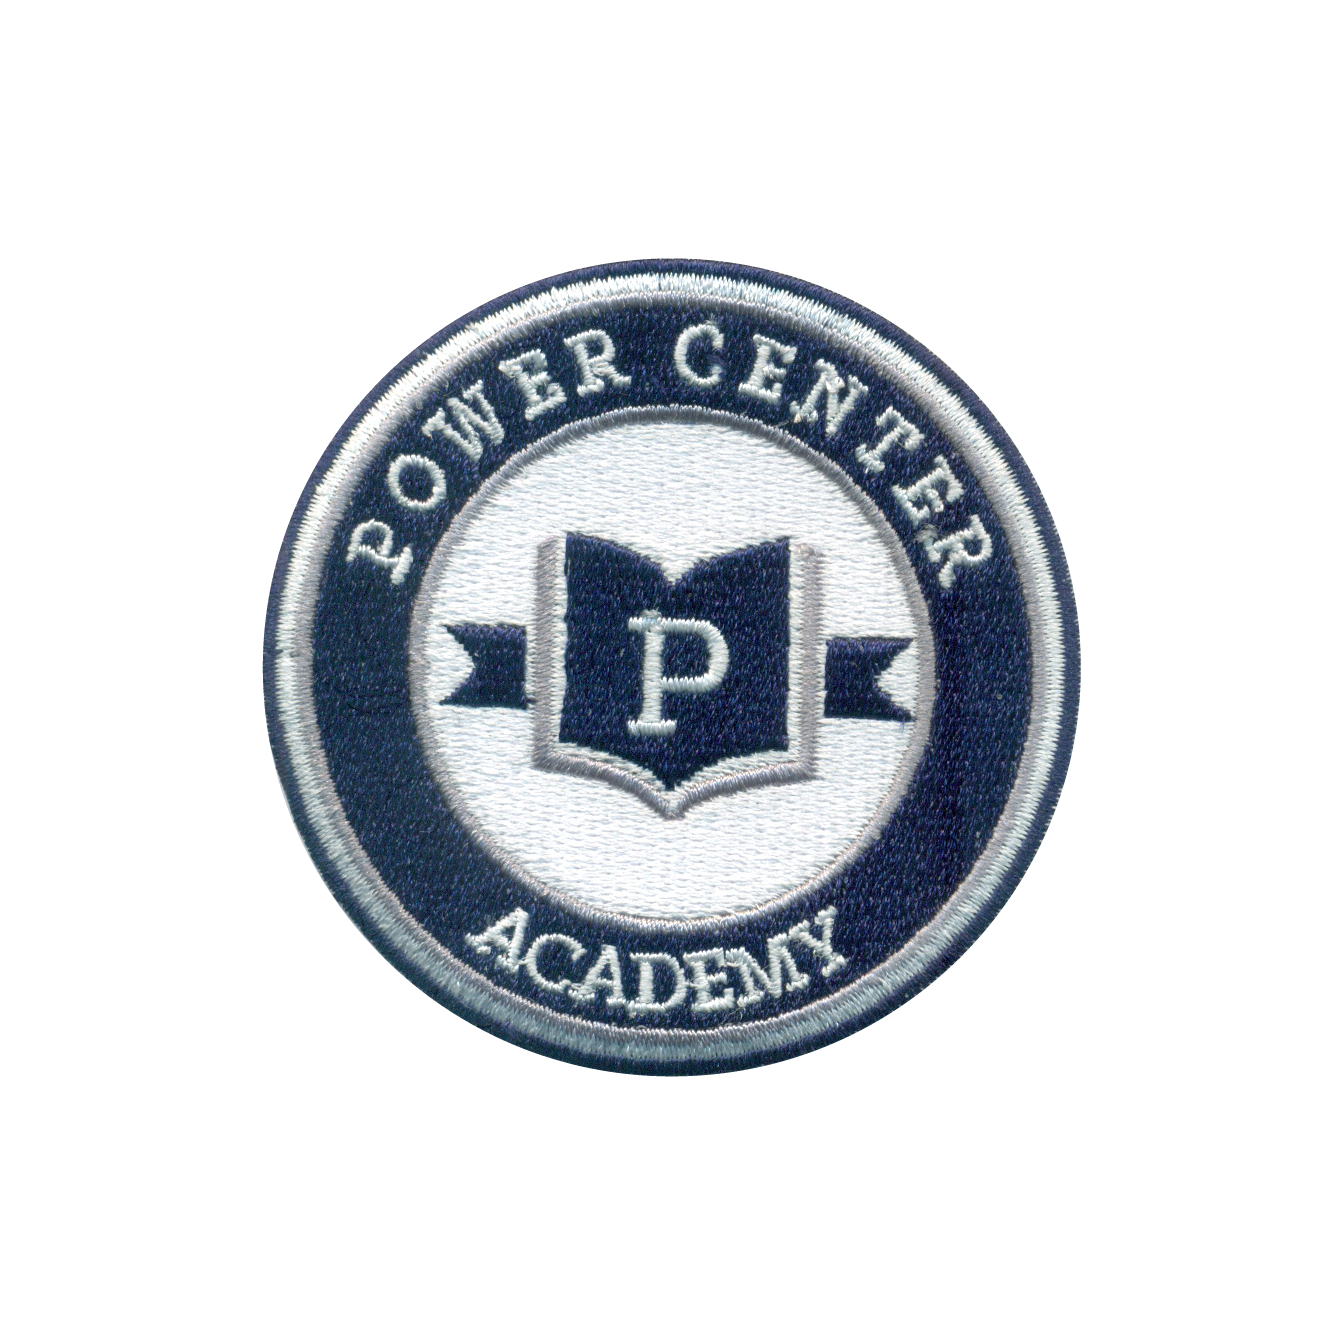 Power center academy